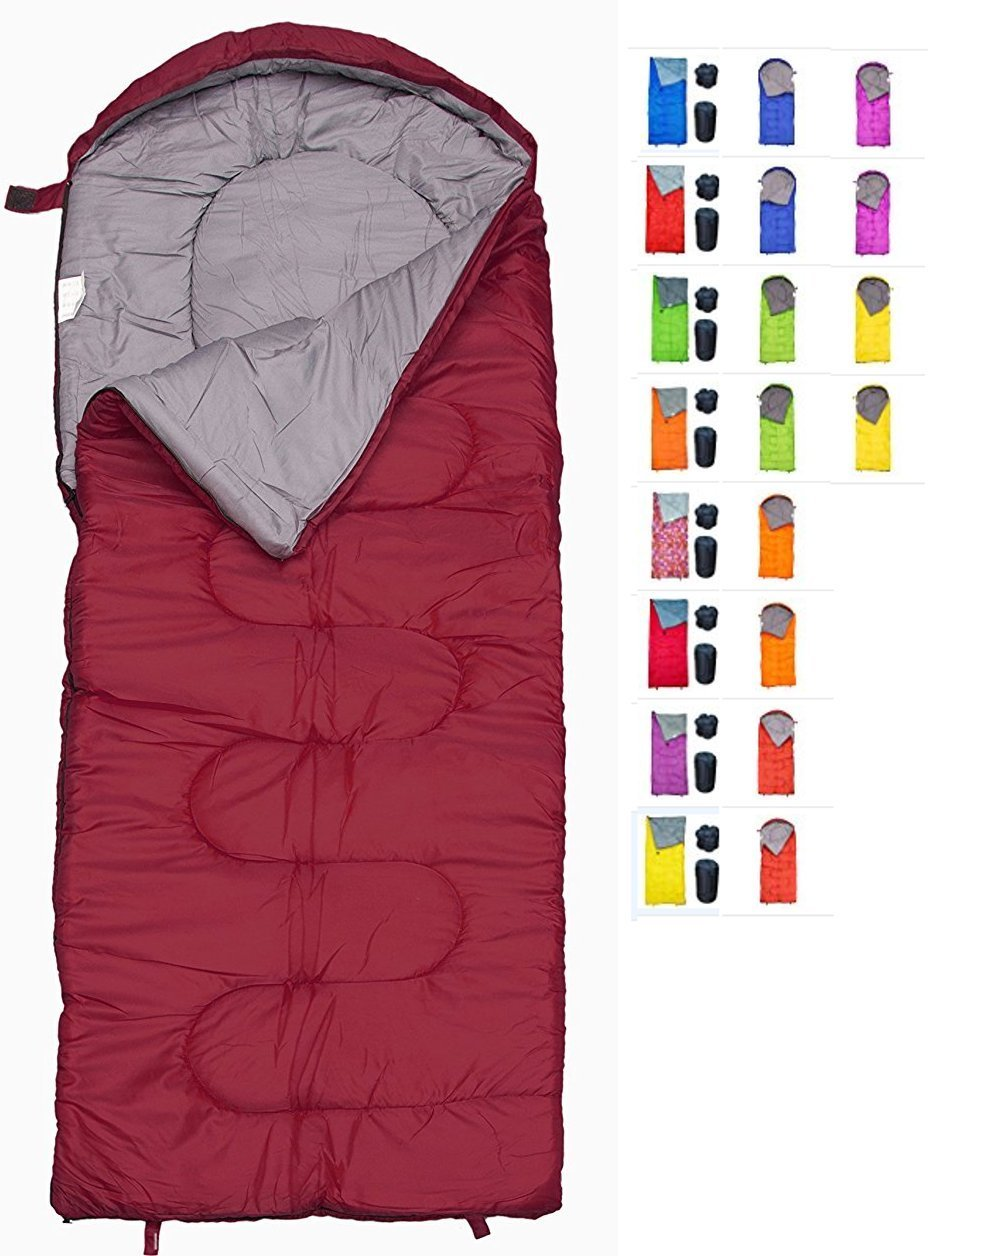 REVALCAMP Sleeping Bag for Cold Weather - 4 Season Envelope Shape Bags by Great for Kids, Teens & Adults. Warm and Lightweight - Perfect for Hiking, Backpacking & Camping (Bordeaux - Right Zip) by REVALCAMP